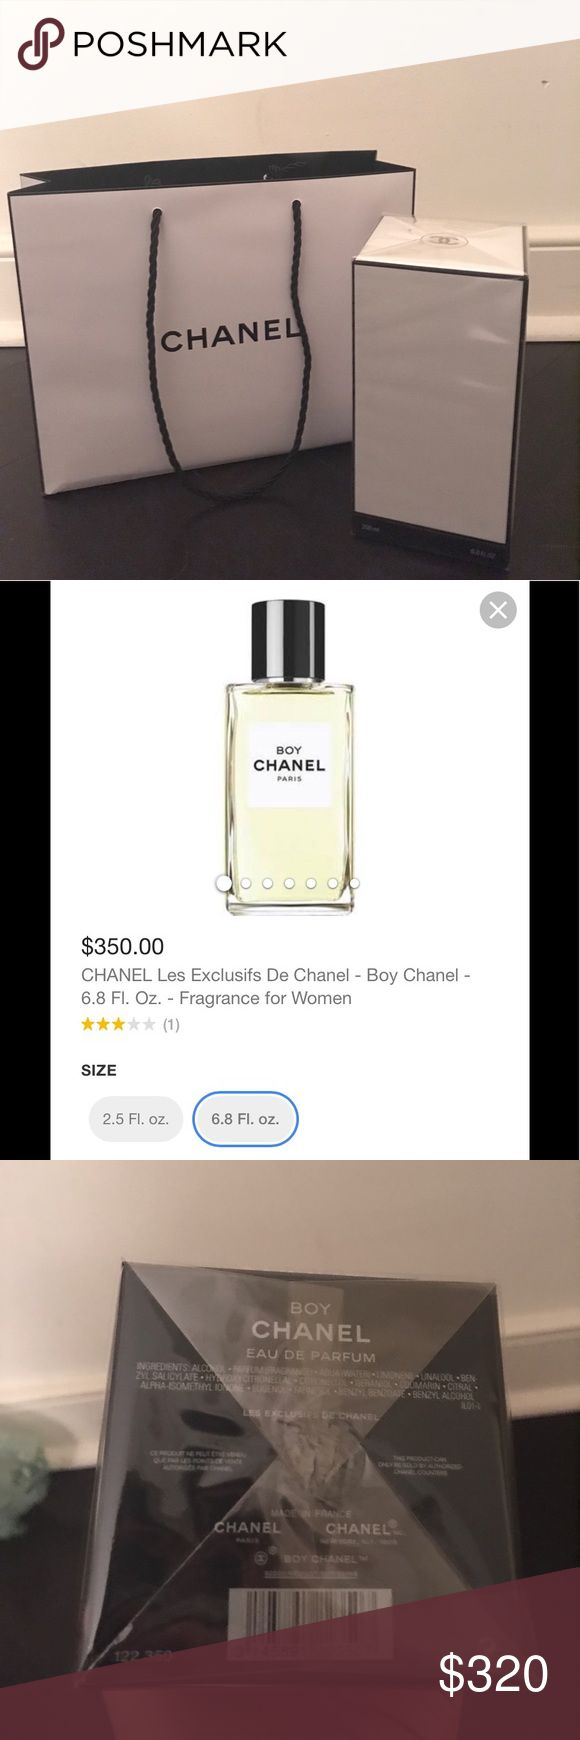 BOY CHANEL 6.8 Fl. Oz. - Les Exclusifs De Chanel MSRP: $350 + Tax | Brand New | Come with Bag CHANEL Makeup